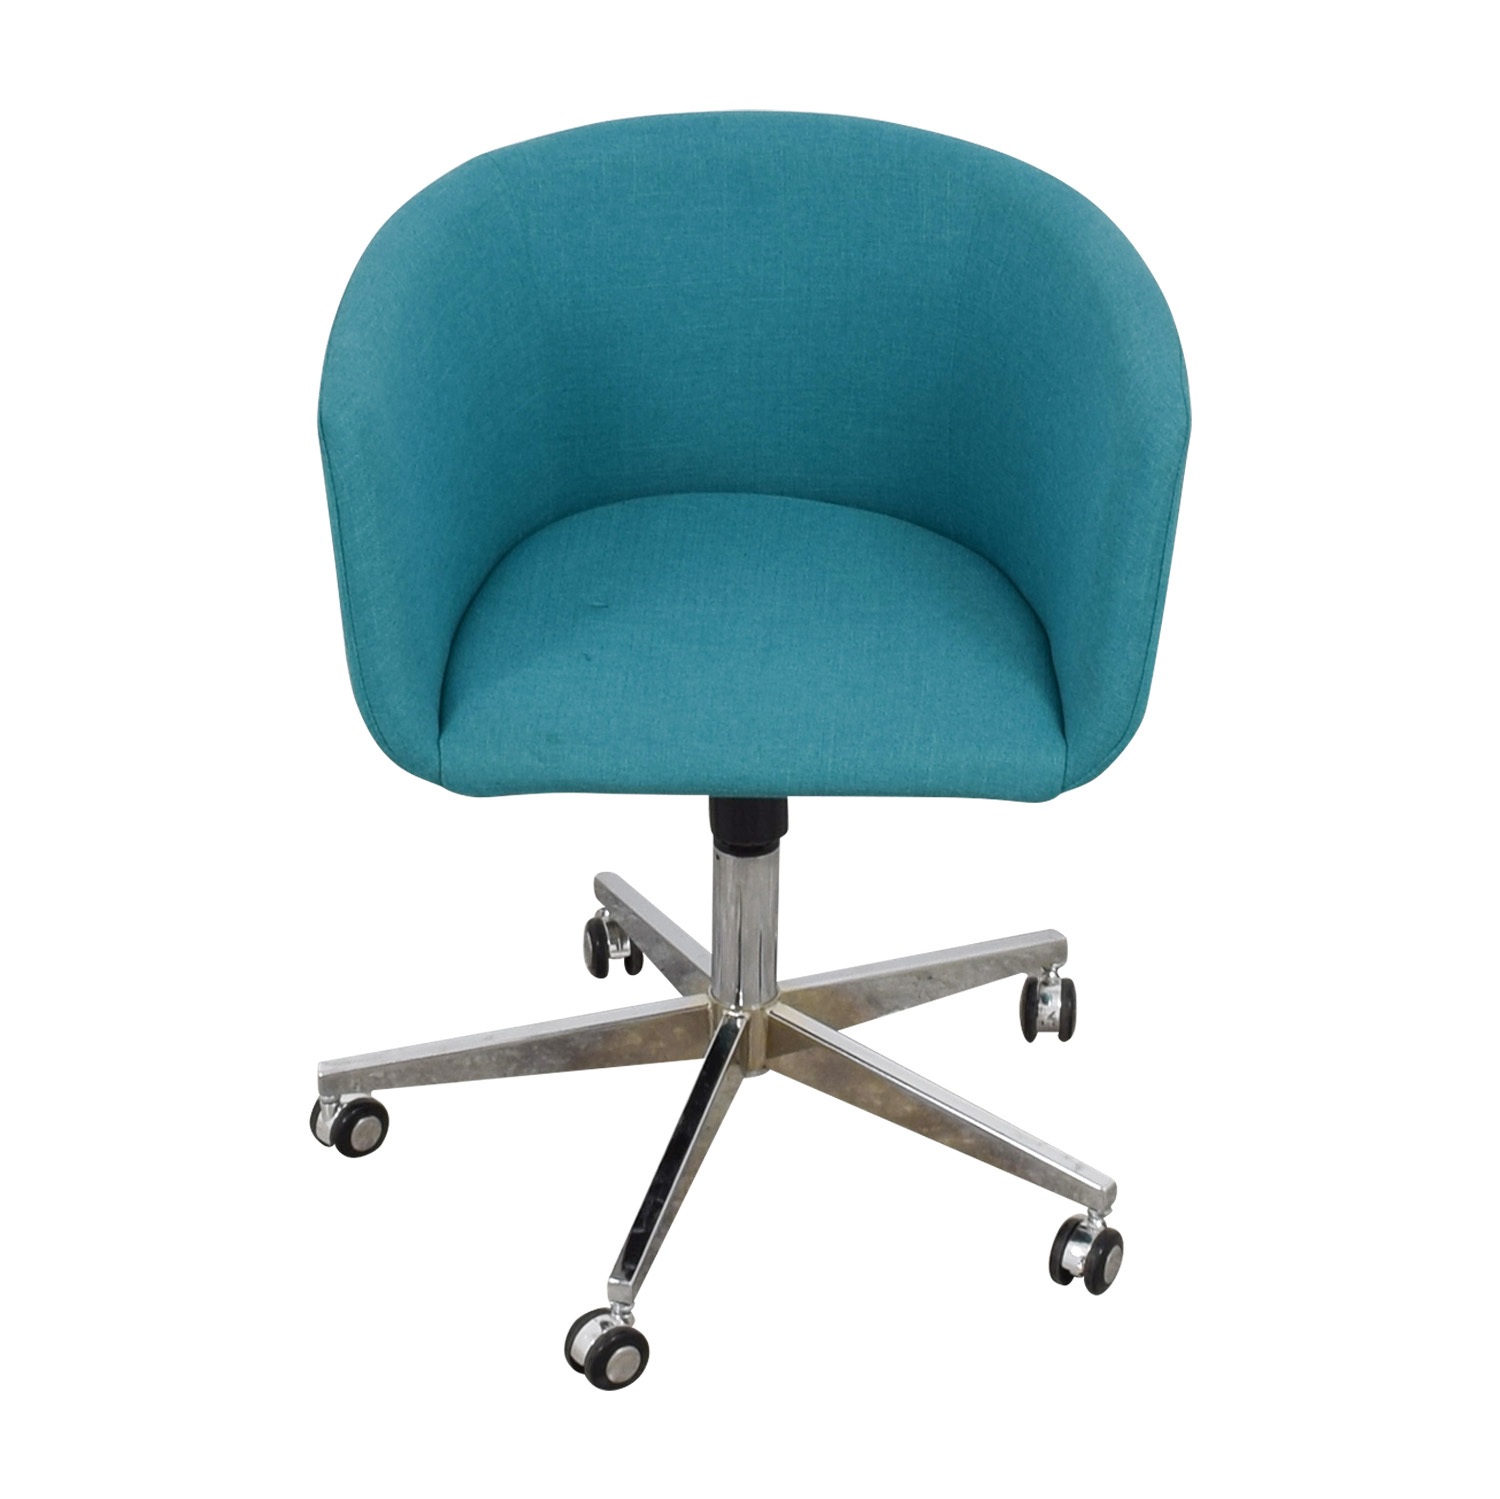 37 OFF  CB2 CB2 Teal Desk Chair with Castors  Chairs